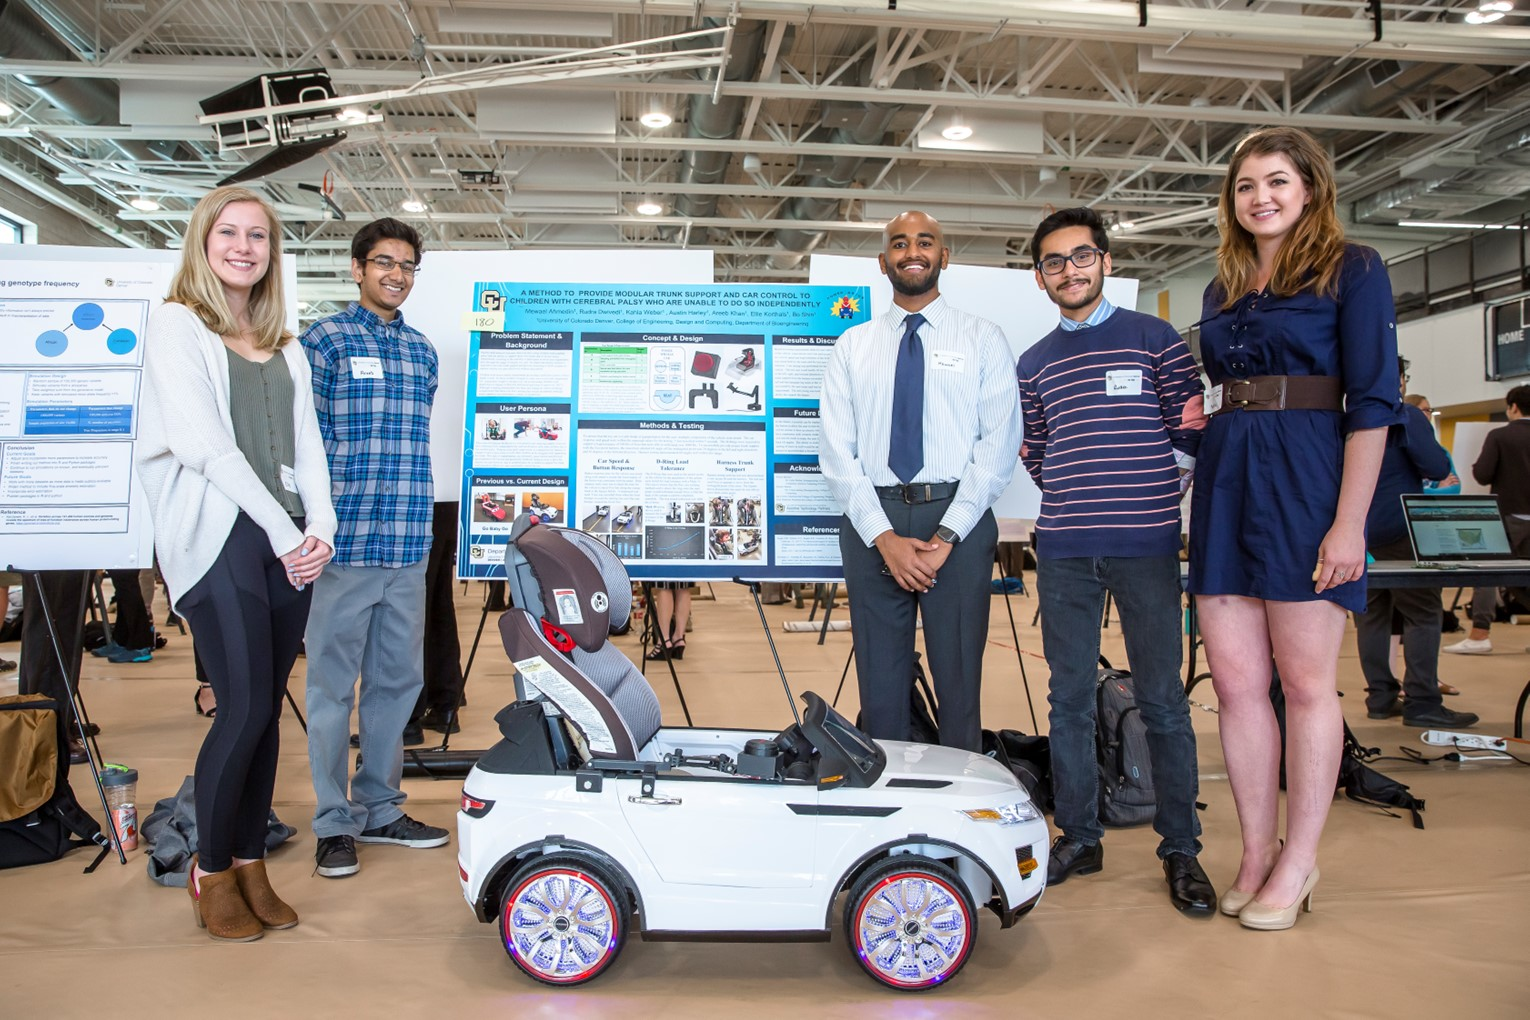 Engineering students at the College of Engineer, Design, and Computing final presentation forum, featuring a remote car as their project